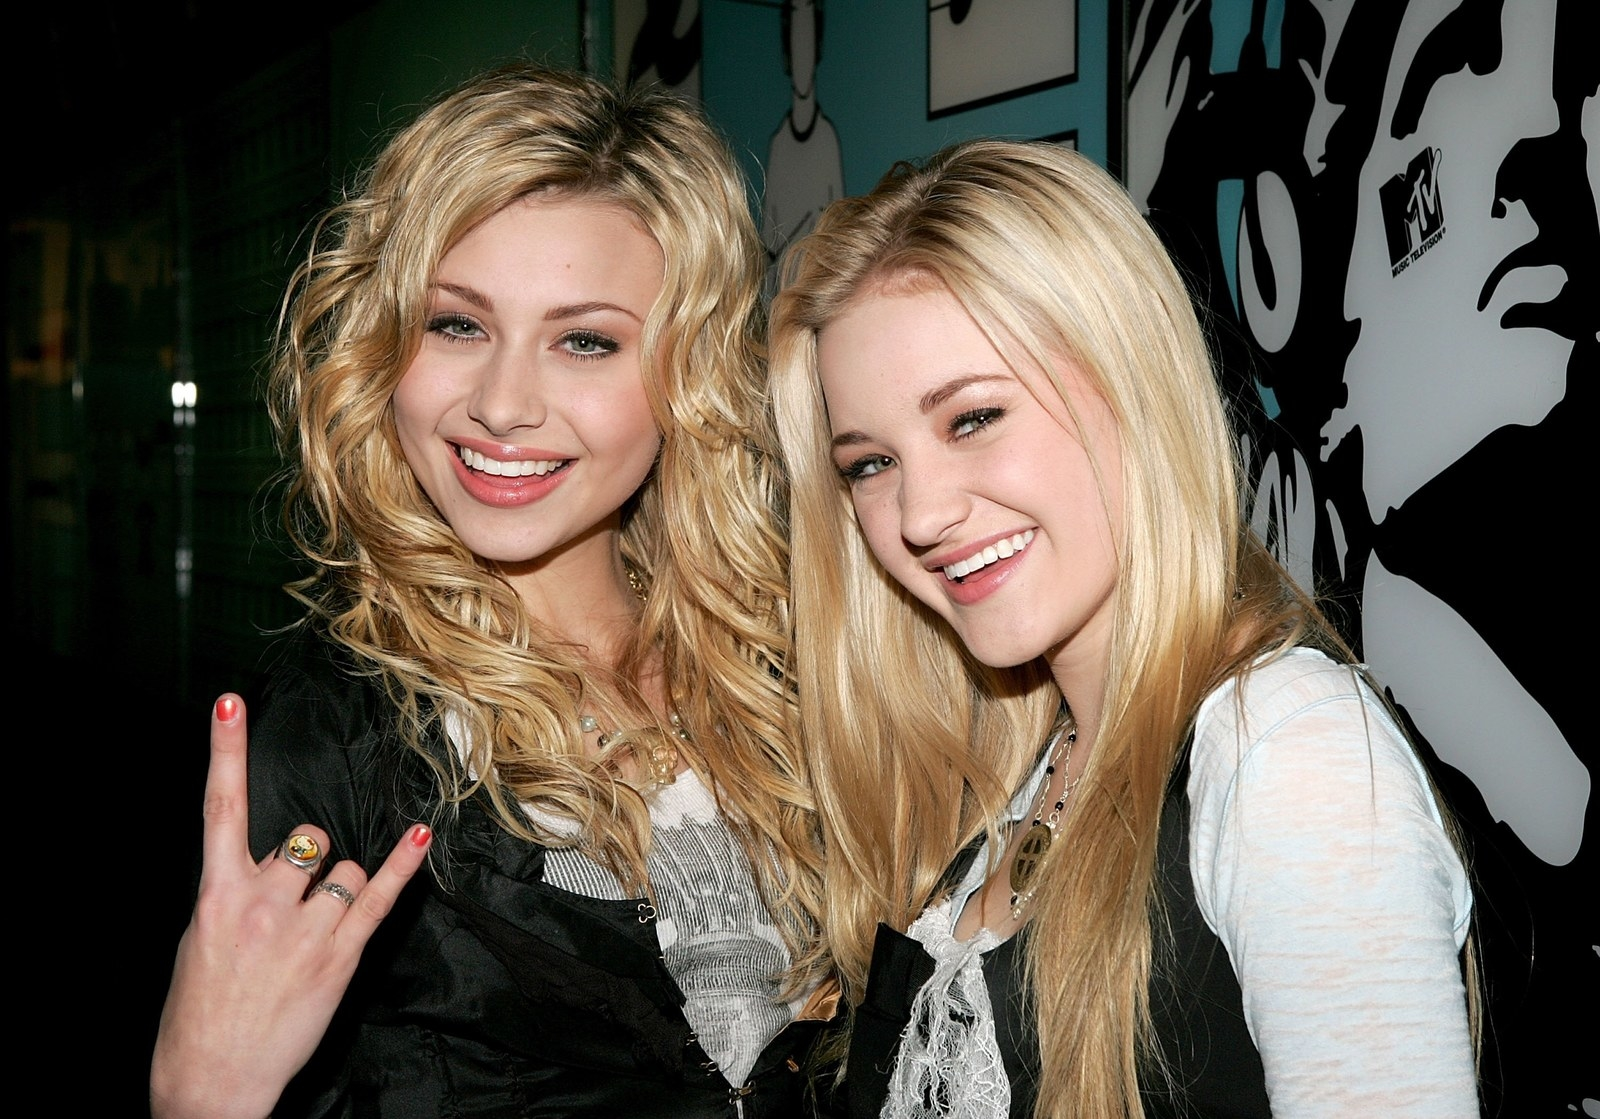 aly and aj - photo #11